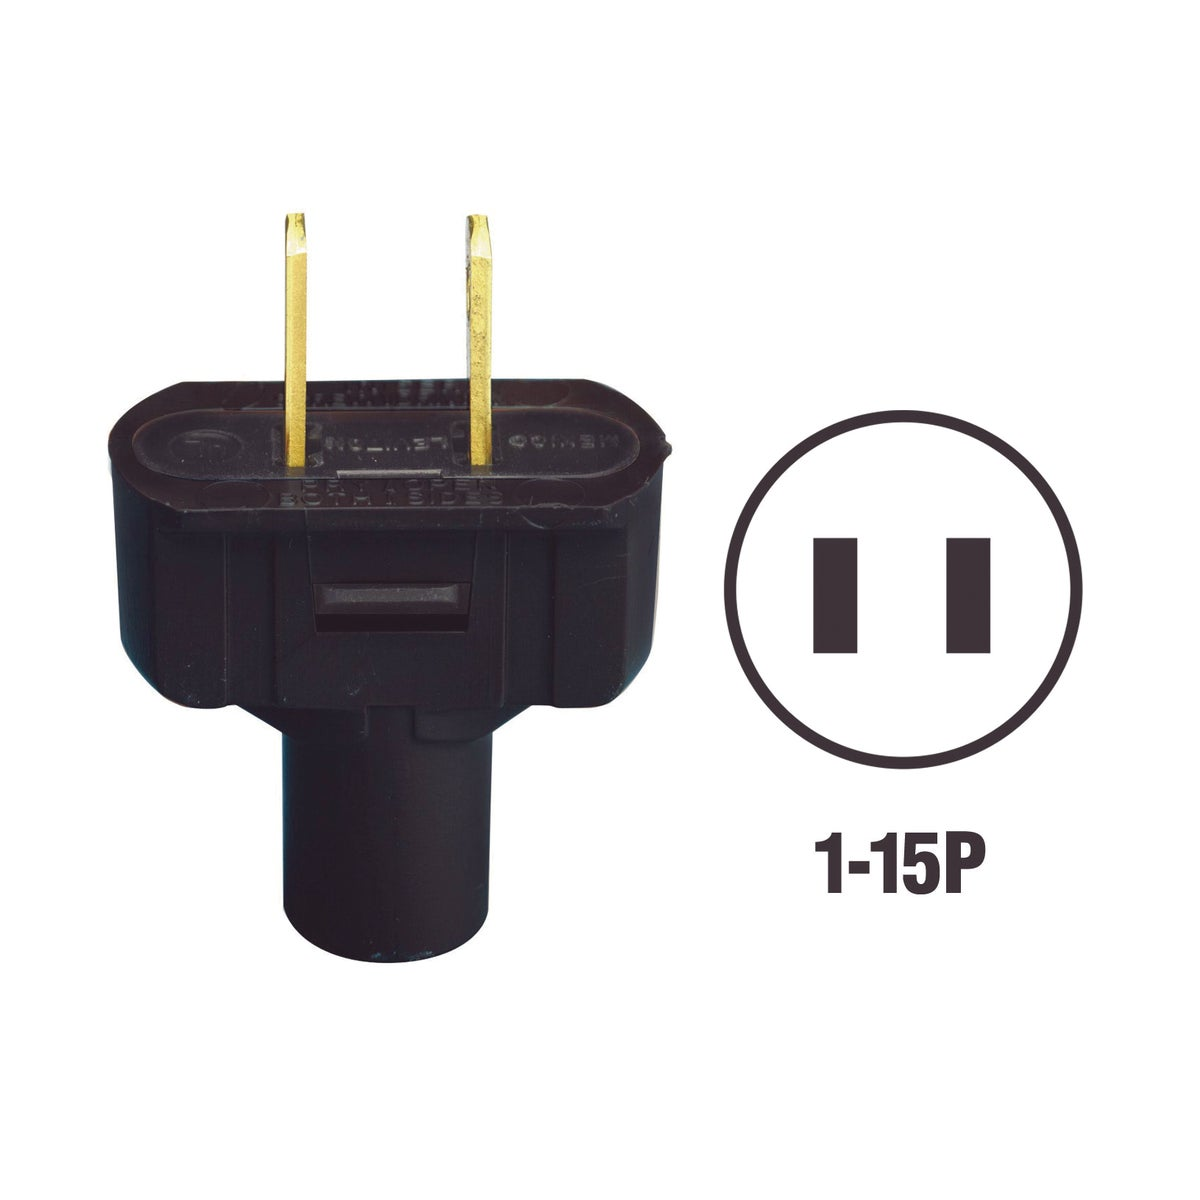 BLK CORD PLUG - 48643E by Leviton Mfg Co